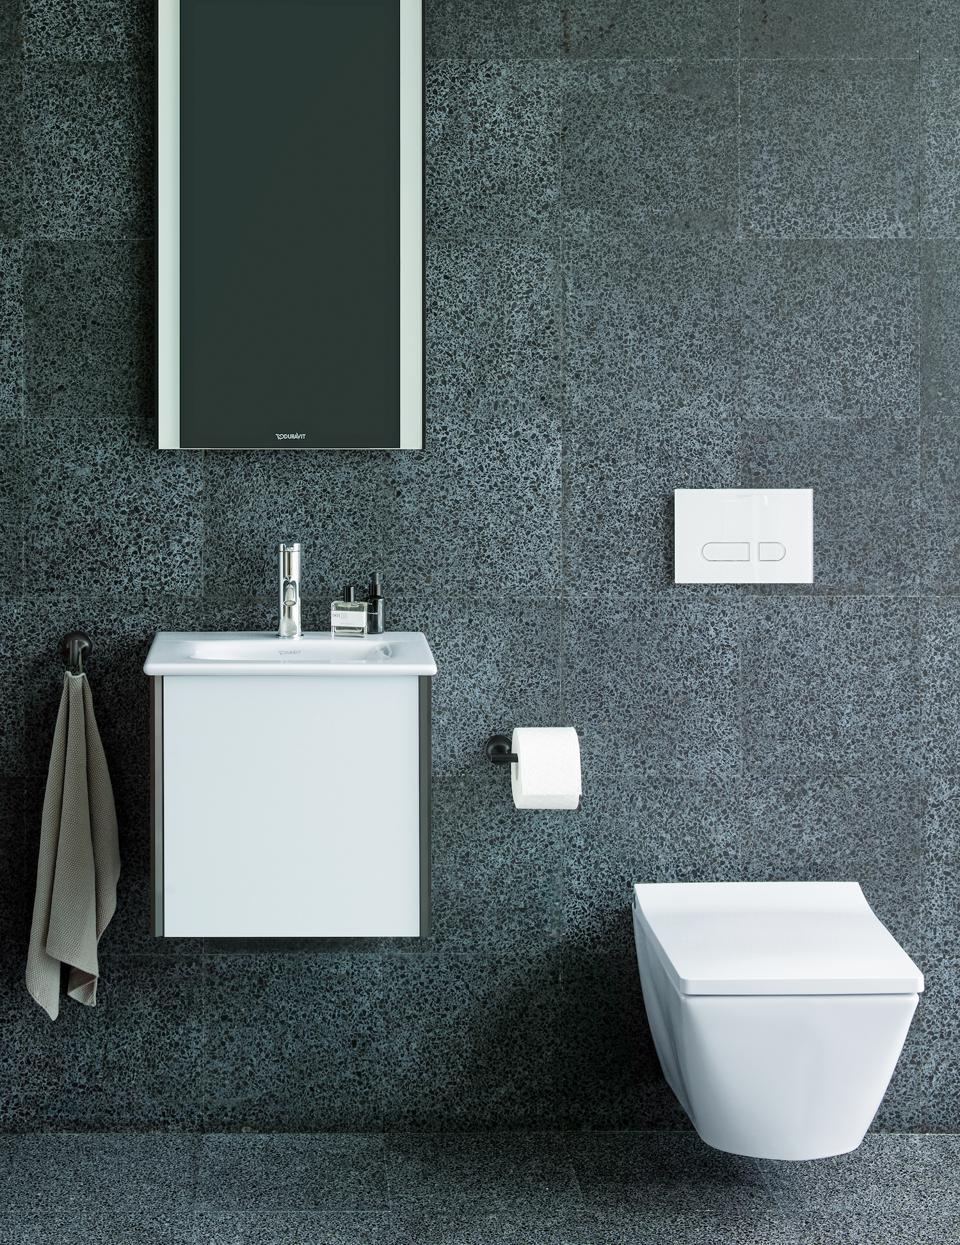 This is part of the Viu collection by Duravit. Their Rimless®​ technology ensures outstanding flush performance, while metal buttons positioned on the sides allow for easy removal of the seat cover to simplify cleaning.